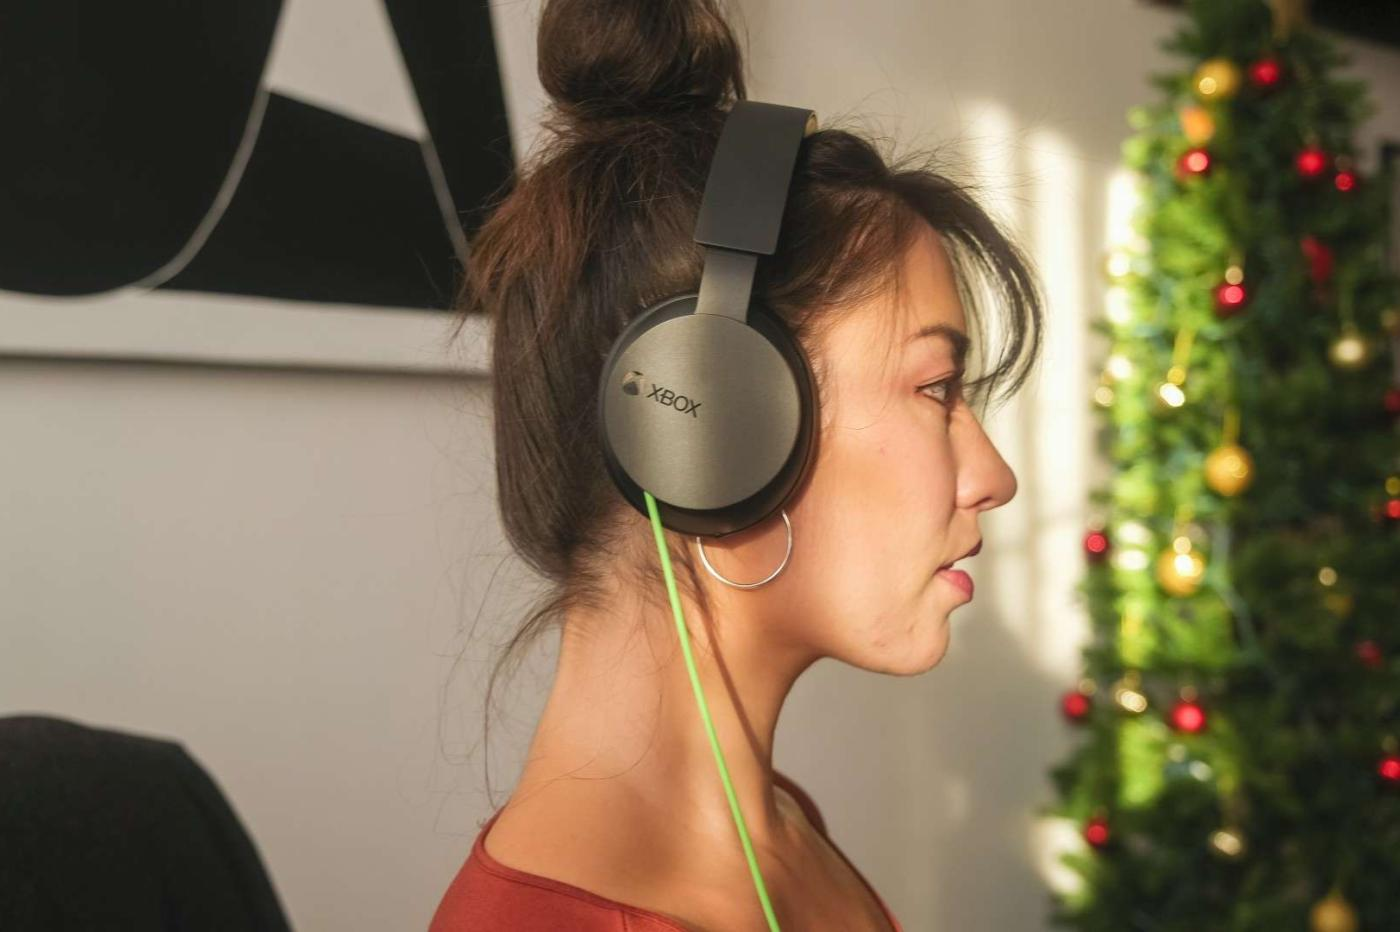 Wired xbox headset test